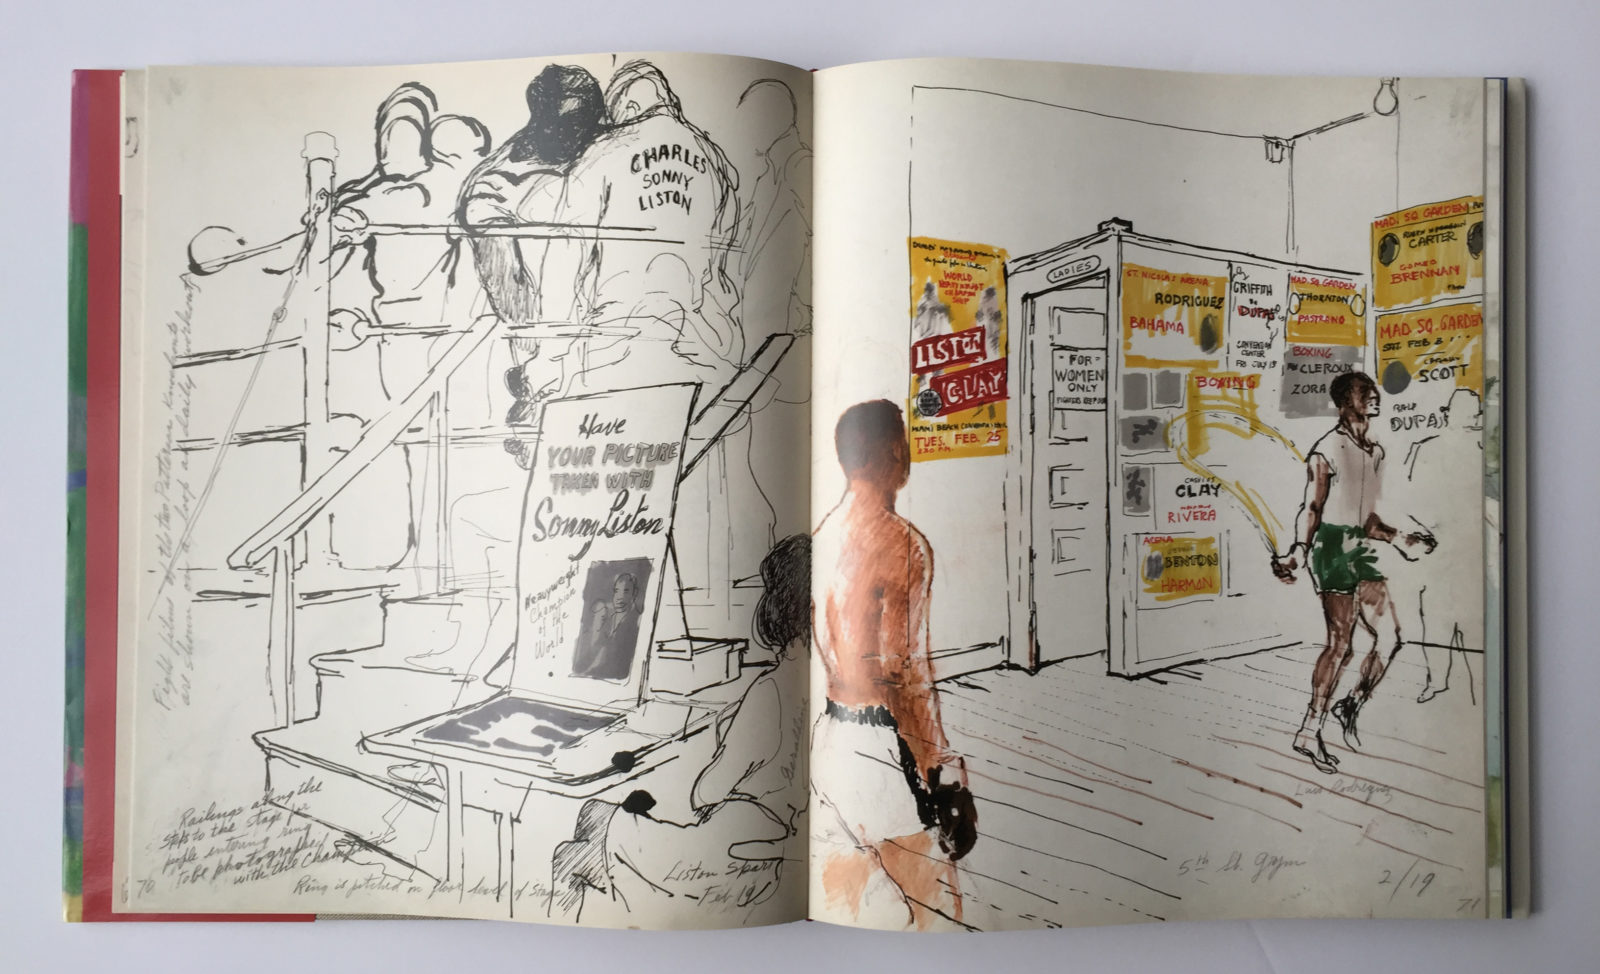 Artwork from, The LeRoy Neiman Sketchbook: 1964 Liston vs. Clay, 1965 Ali vs. Liston